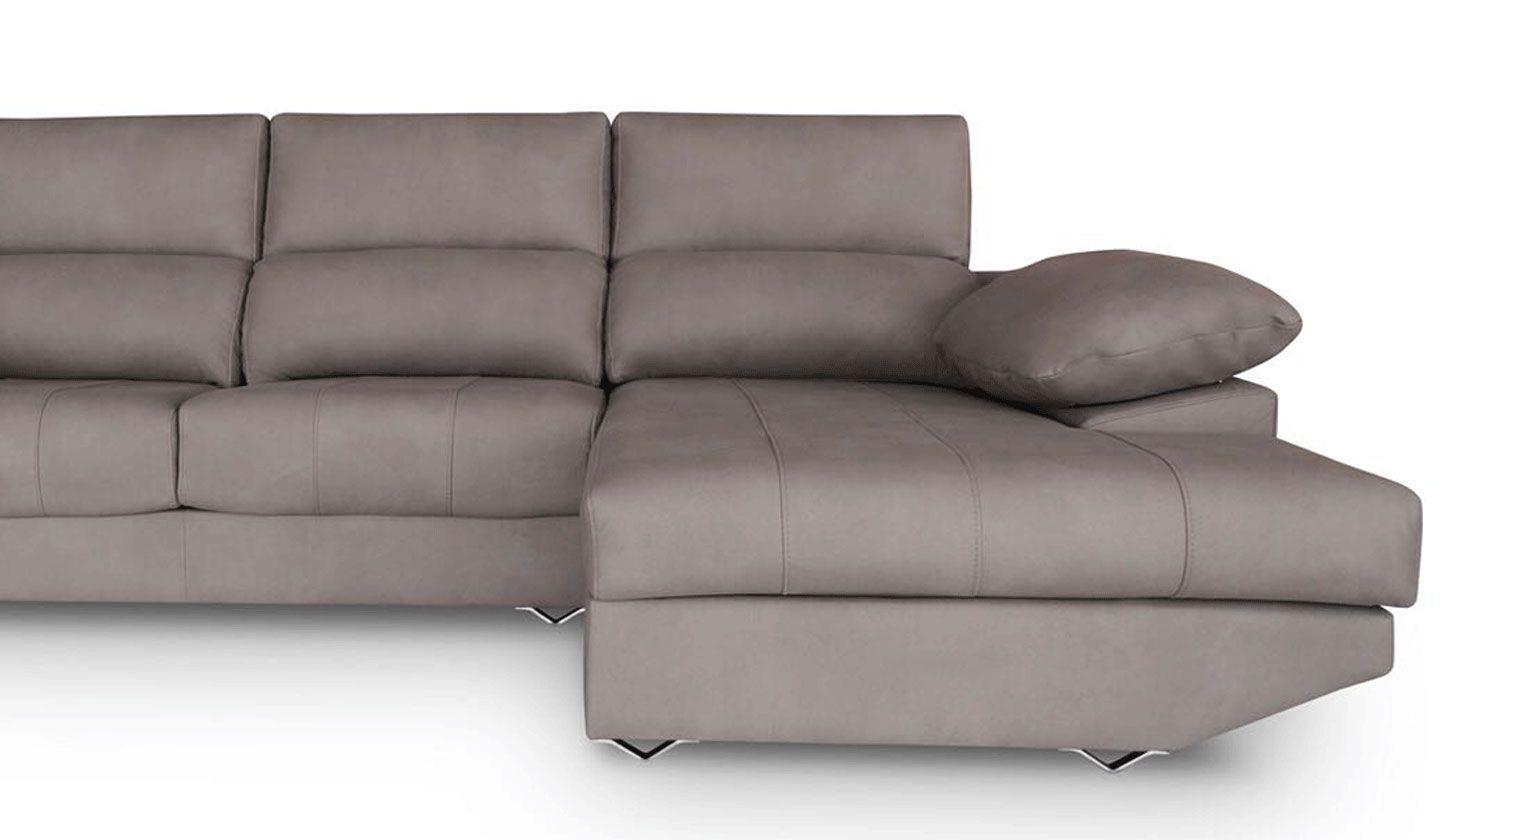 Comprar sof tela invictus chaise longue 3 plazas tela romer for Sofas baratos alicante